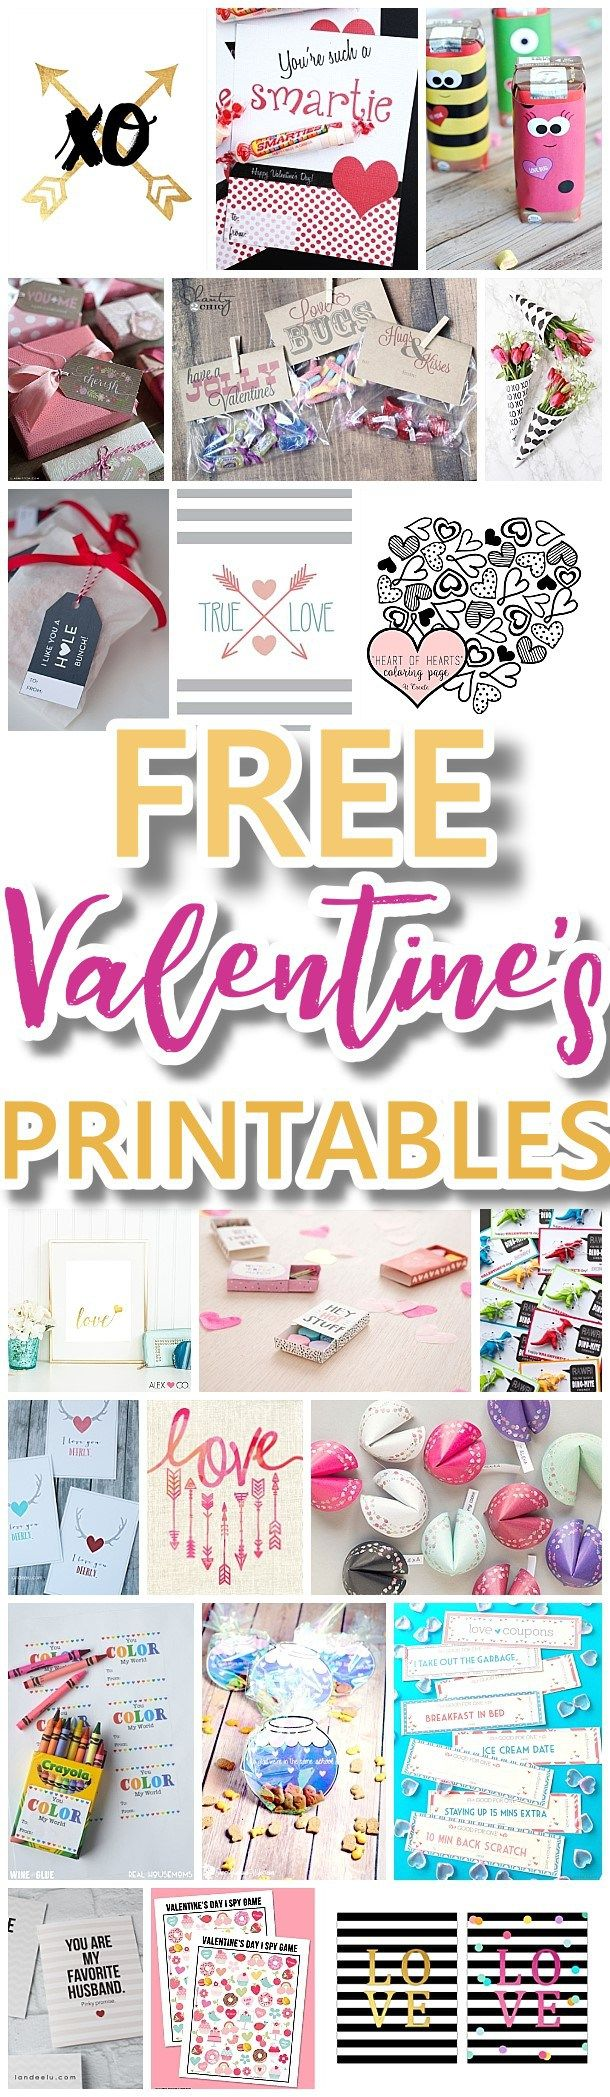 The BEST Valentine's Day FREE Printables – Kids Classmate Cards, Valentine Party Decorations, Hearts, Love, Red and Pink Themed Artwork Home Decor and Holiday Greeting Cards for your Sweethearts!